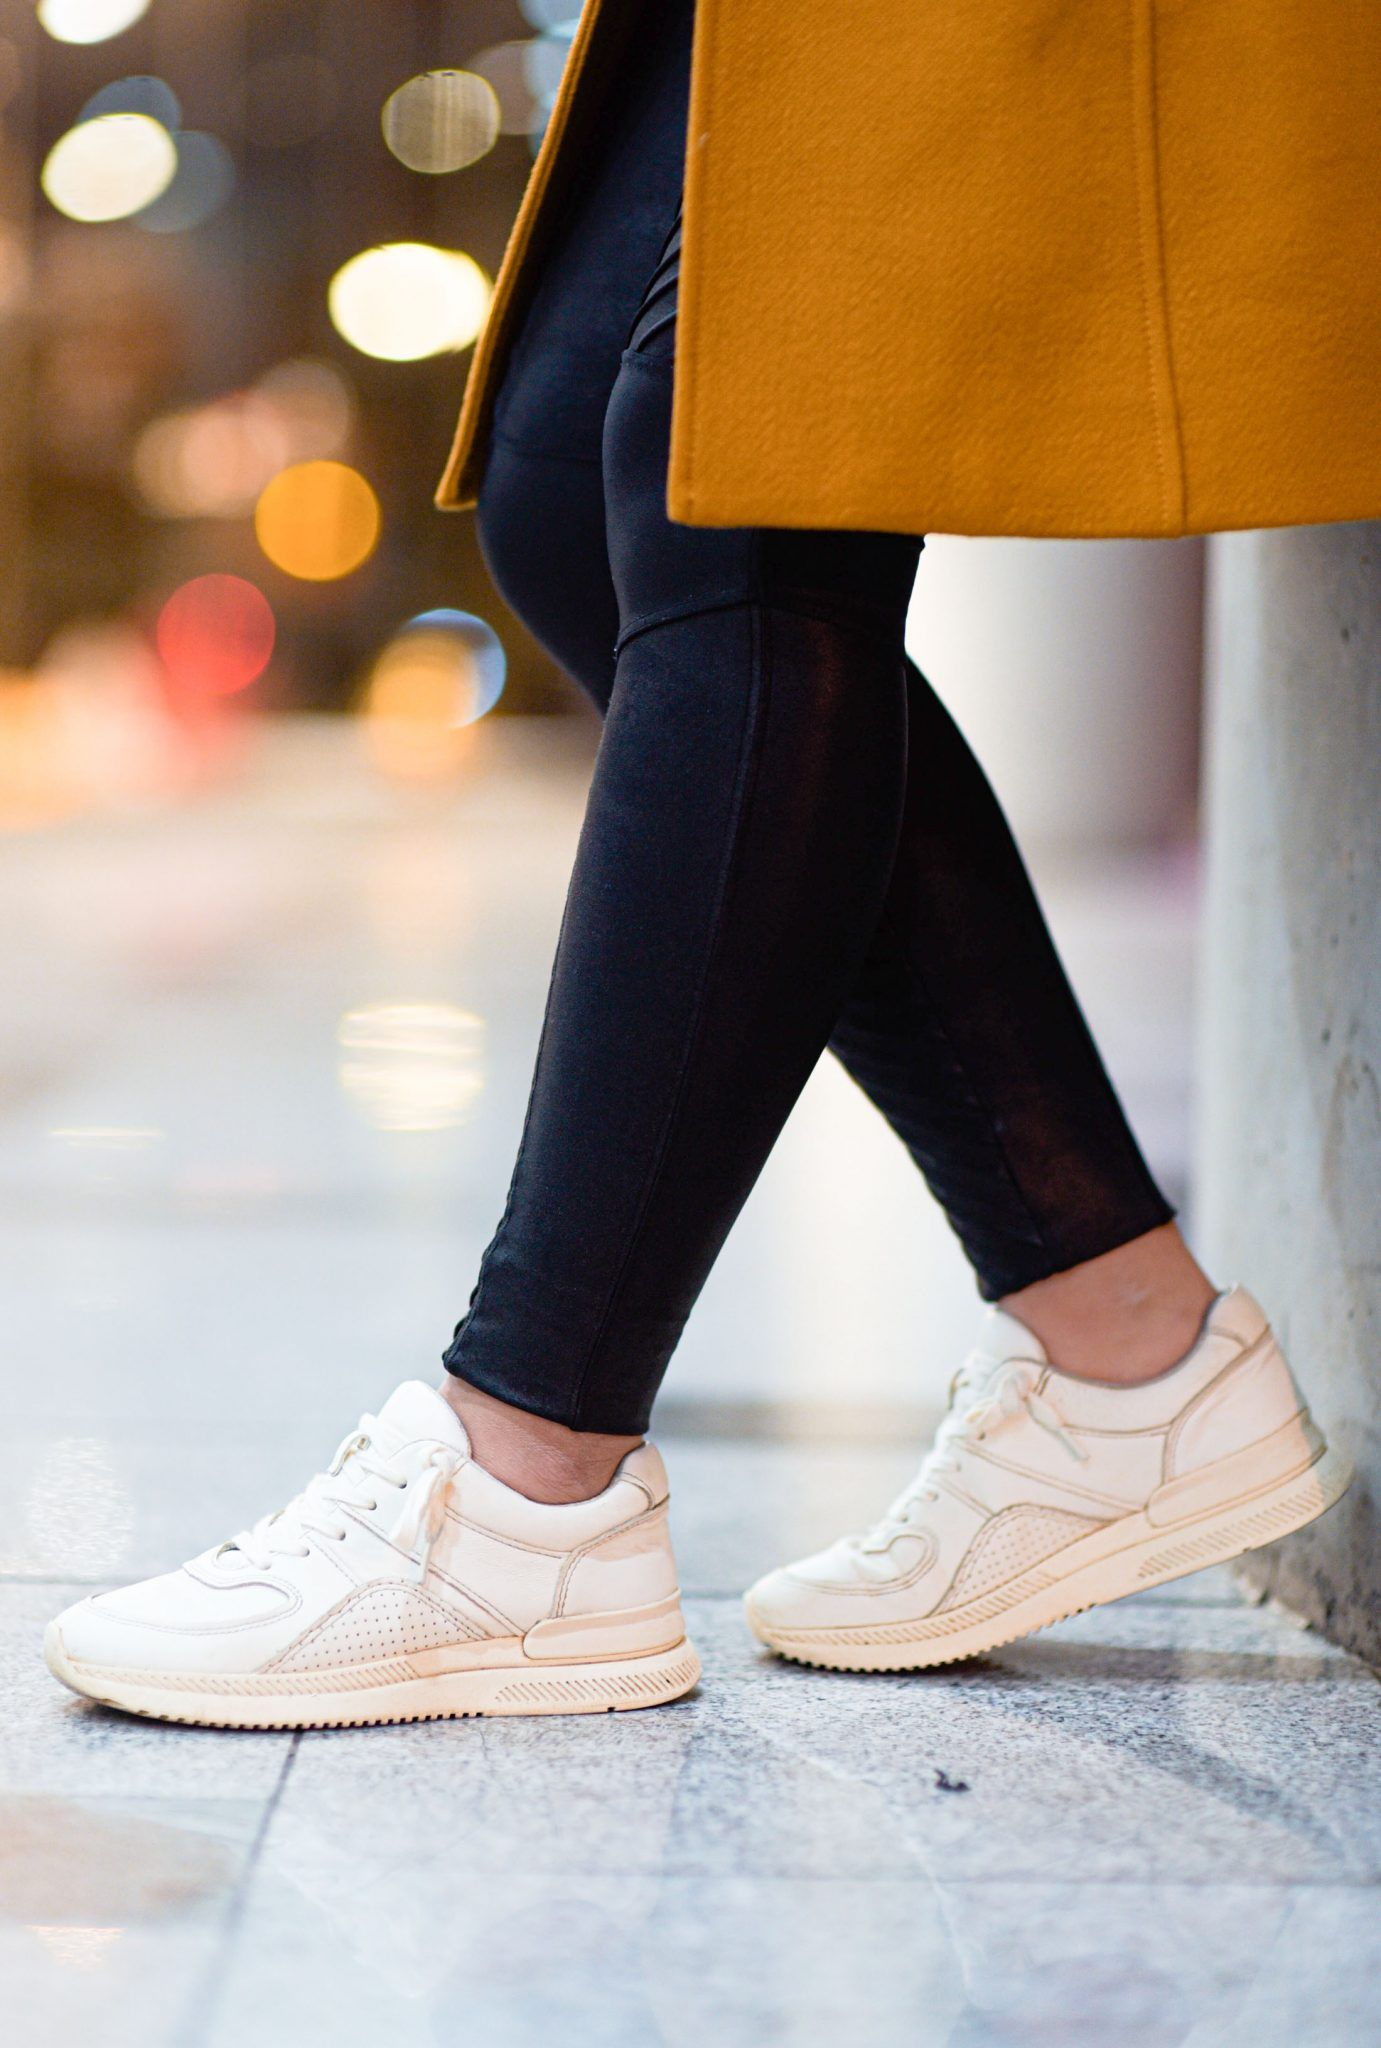 Everlane Tread Trainers: My Review